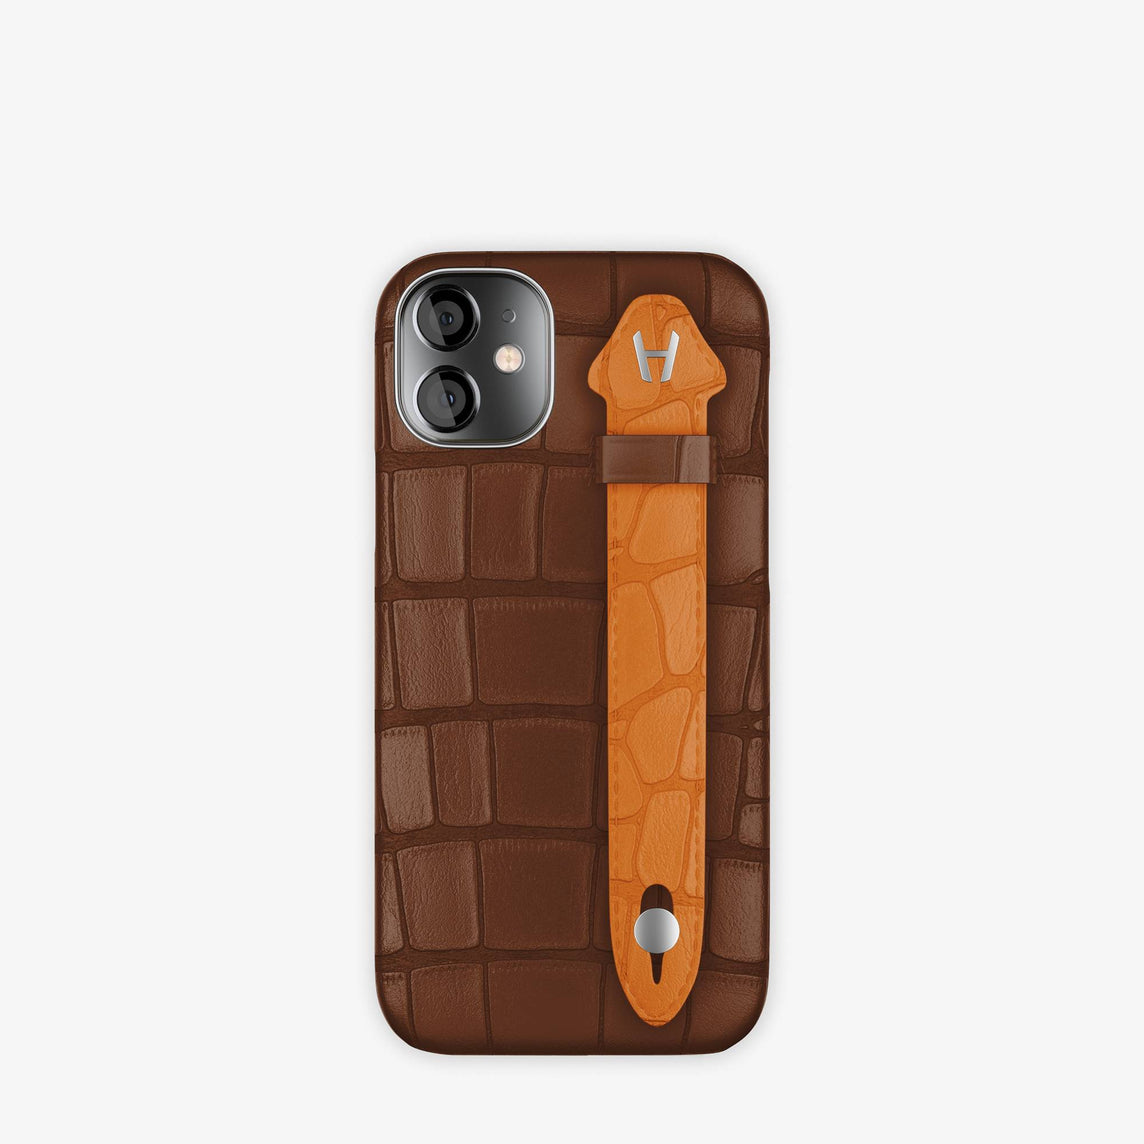 Alligator Side Finger Case iPhone 12 Mini | Brown Chocolat/Orange Apricot -Stainless Steel